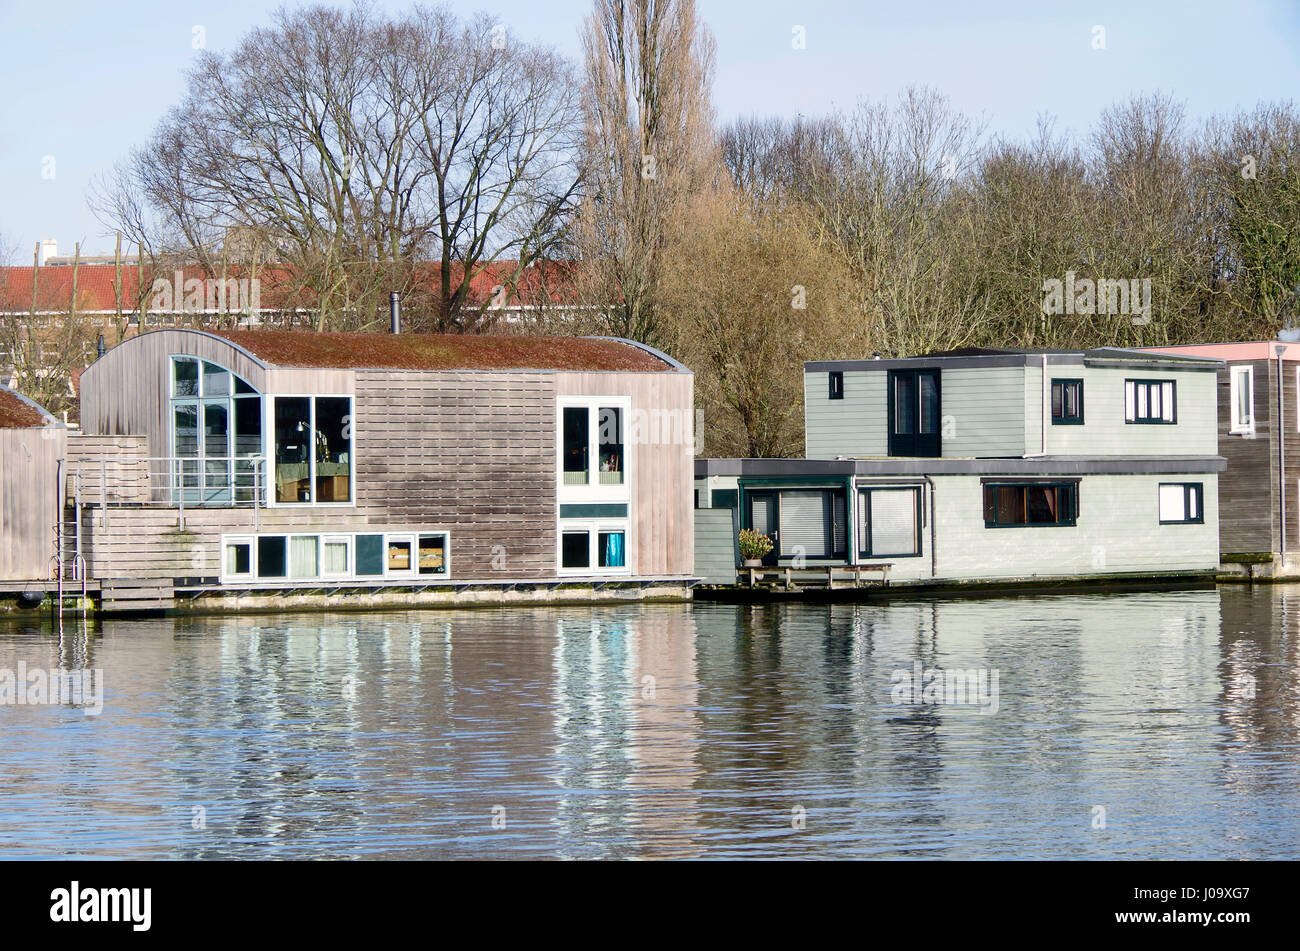 Architecturally distinguished modern house boats on Schinkel canal, Amsterdam-Zuid, Netherlands - Stock Image